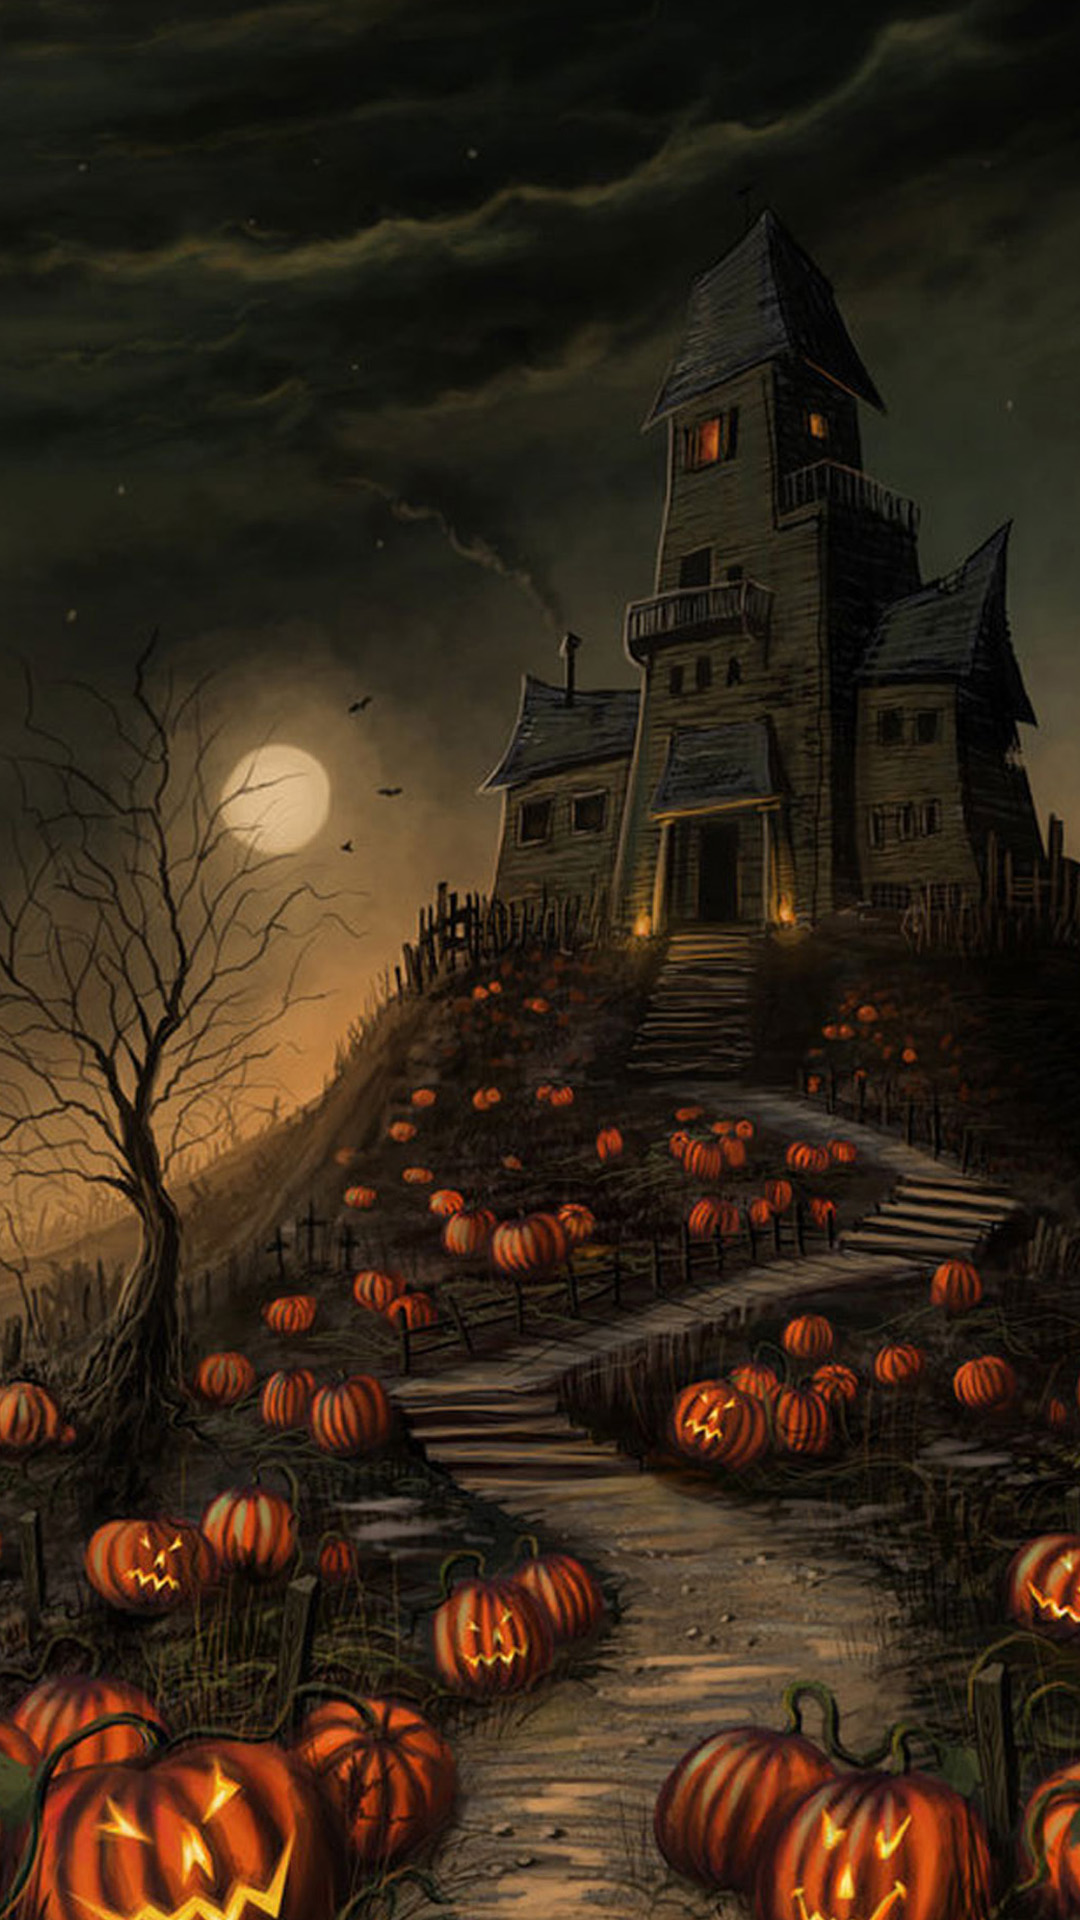 Halloween Haunted House Pumpkin Android Wallpaper free download